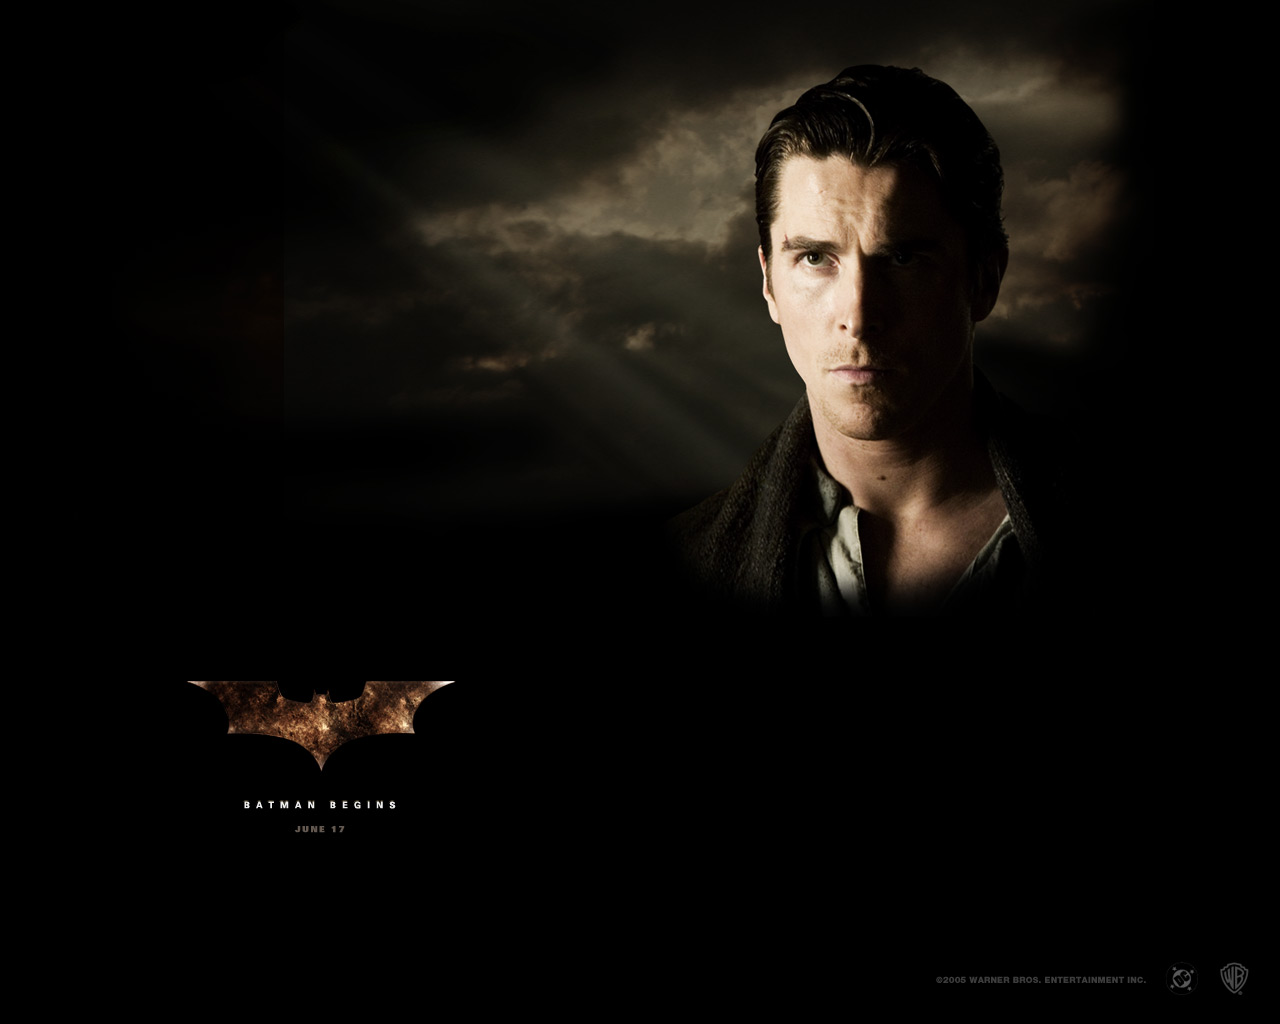 Batman Batman Begins